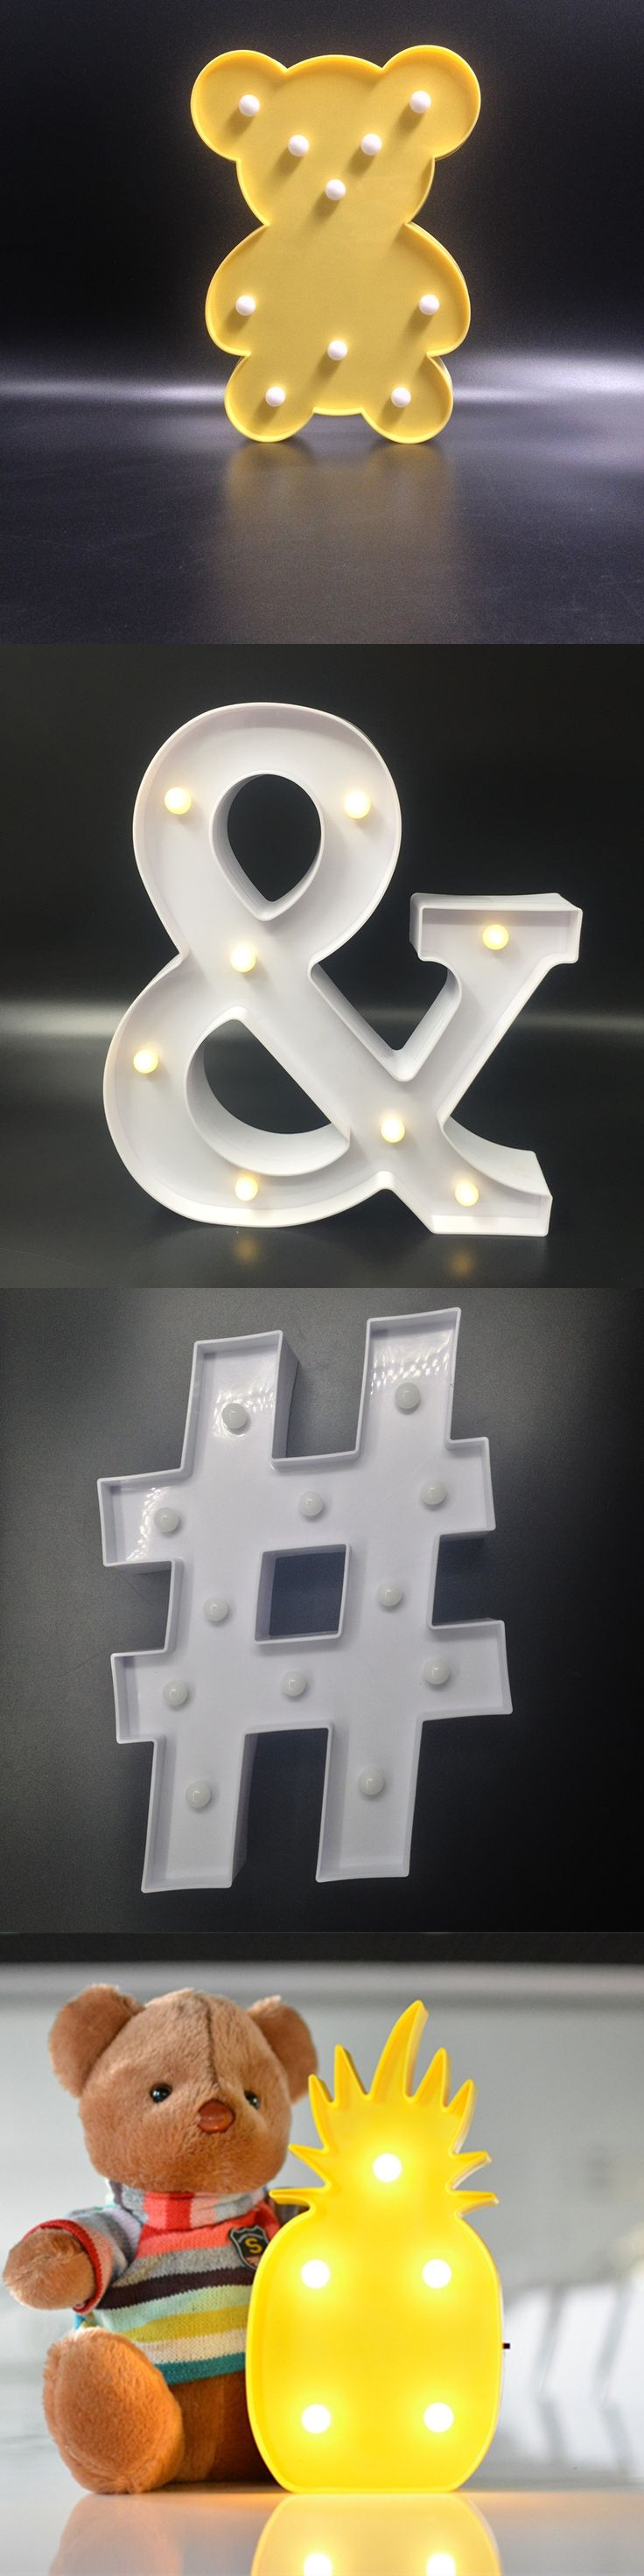 Cute Star Love & # Led Night Light Lamps On Wall For Home Bedside Nightlight for kids Toy Christmas Gifts